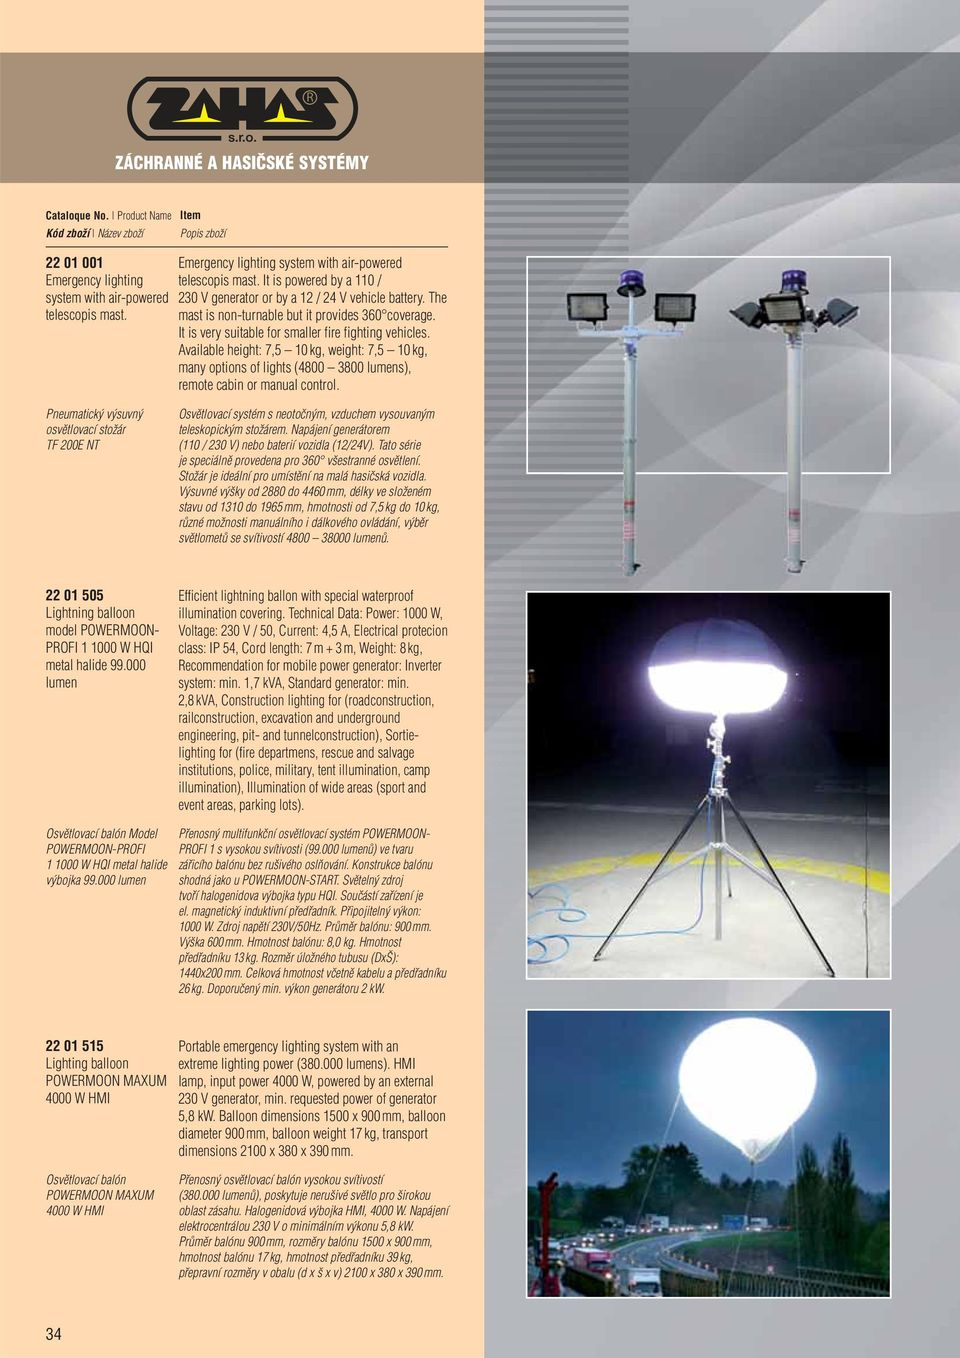 Available height: 7,5 10 kg, weight: 7,5 10 kg, many options of lights (4800 3800 lumens), remote cabin or manual control.